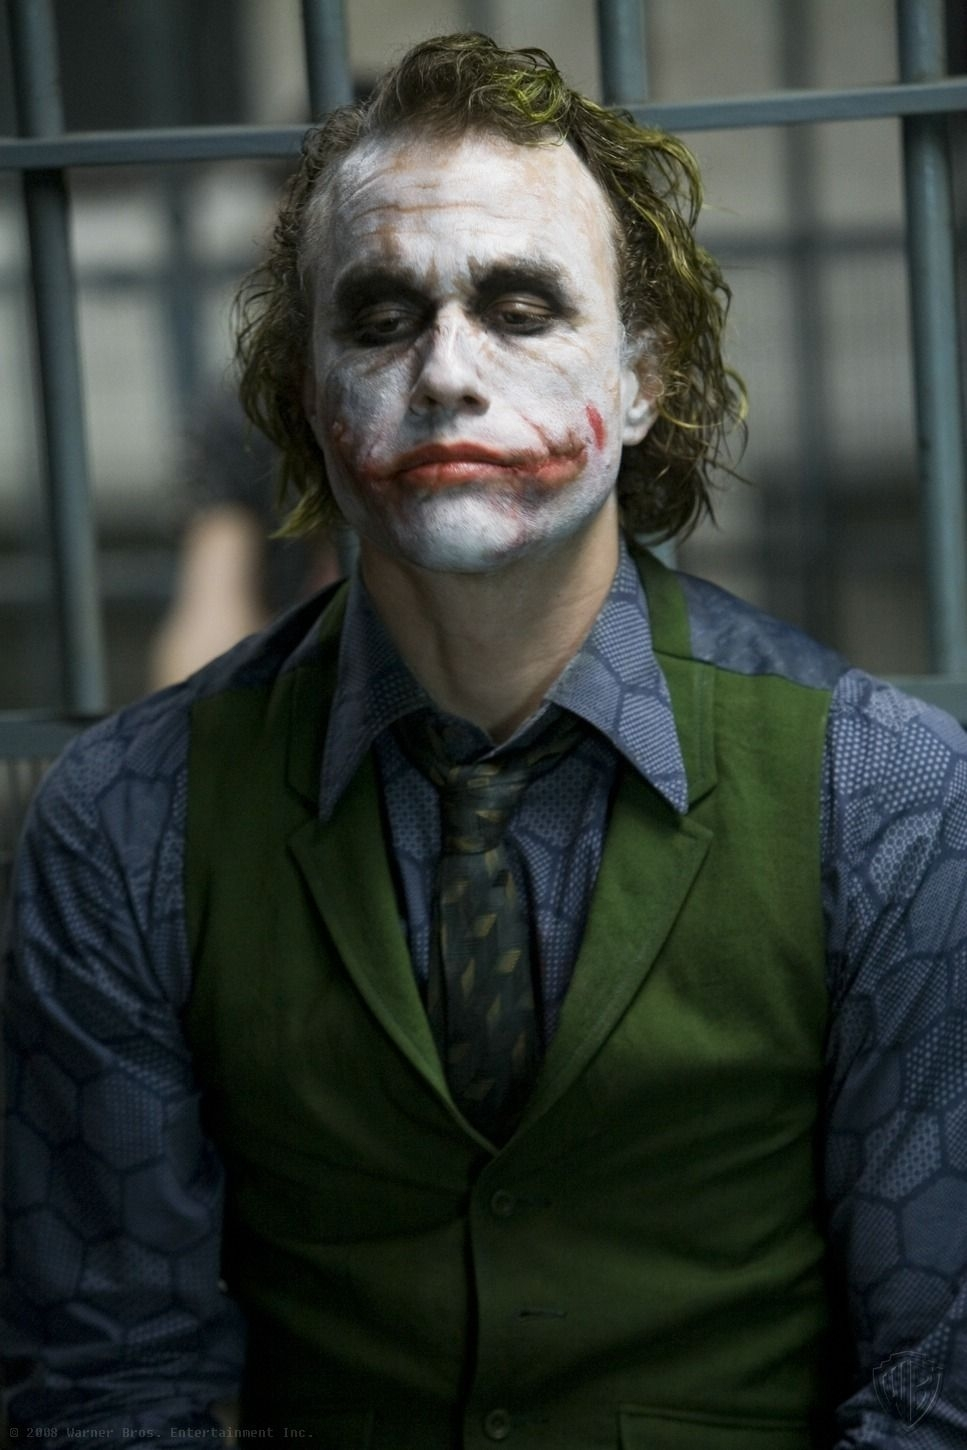 heath ledger's joker. i mean holy fuck. he changed the game for